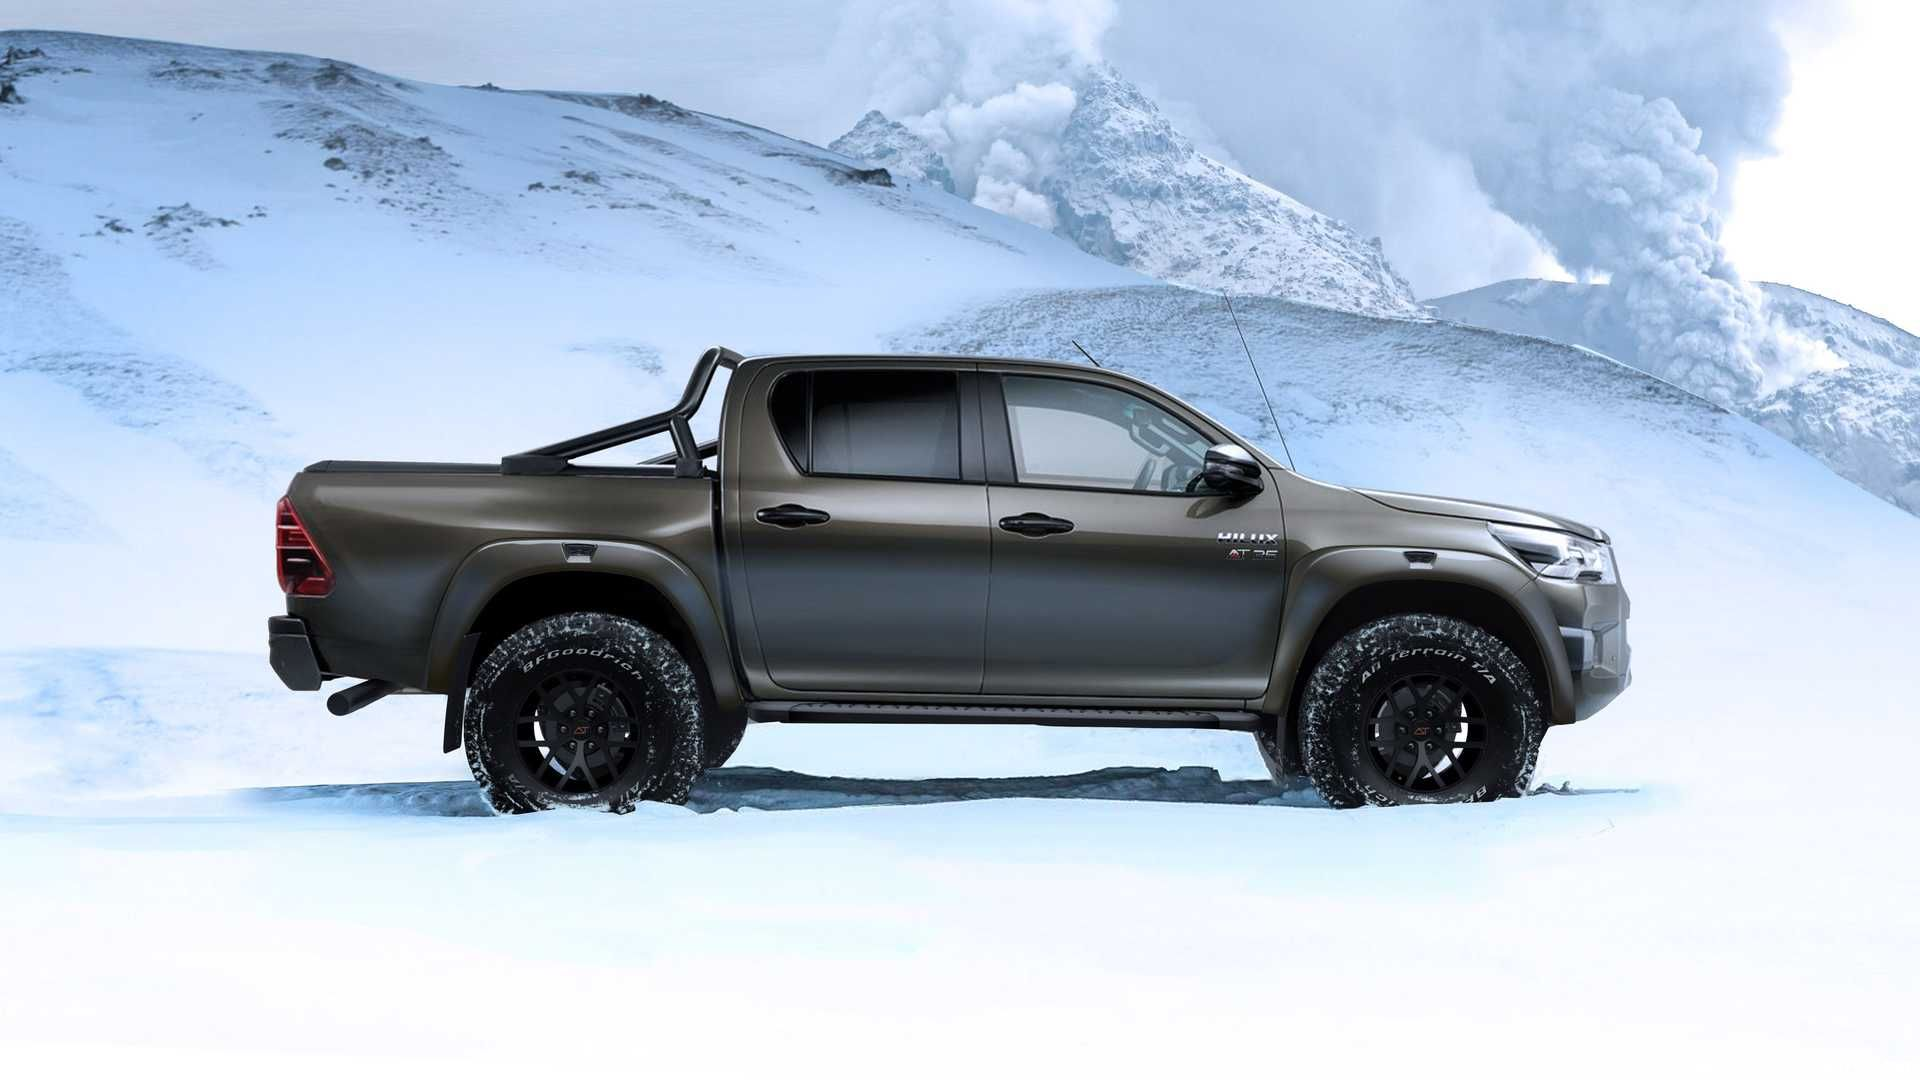 2021-toyota-hilux-at35-by-arctic-trucks (2).jpg